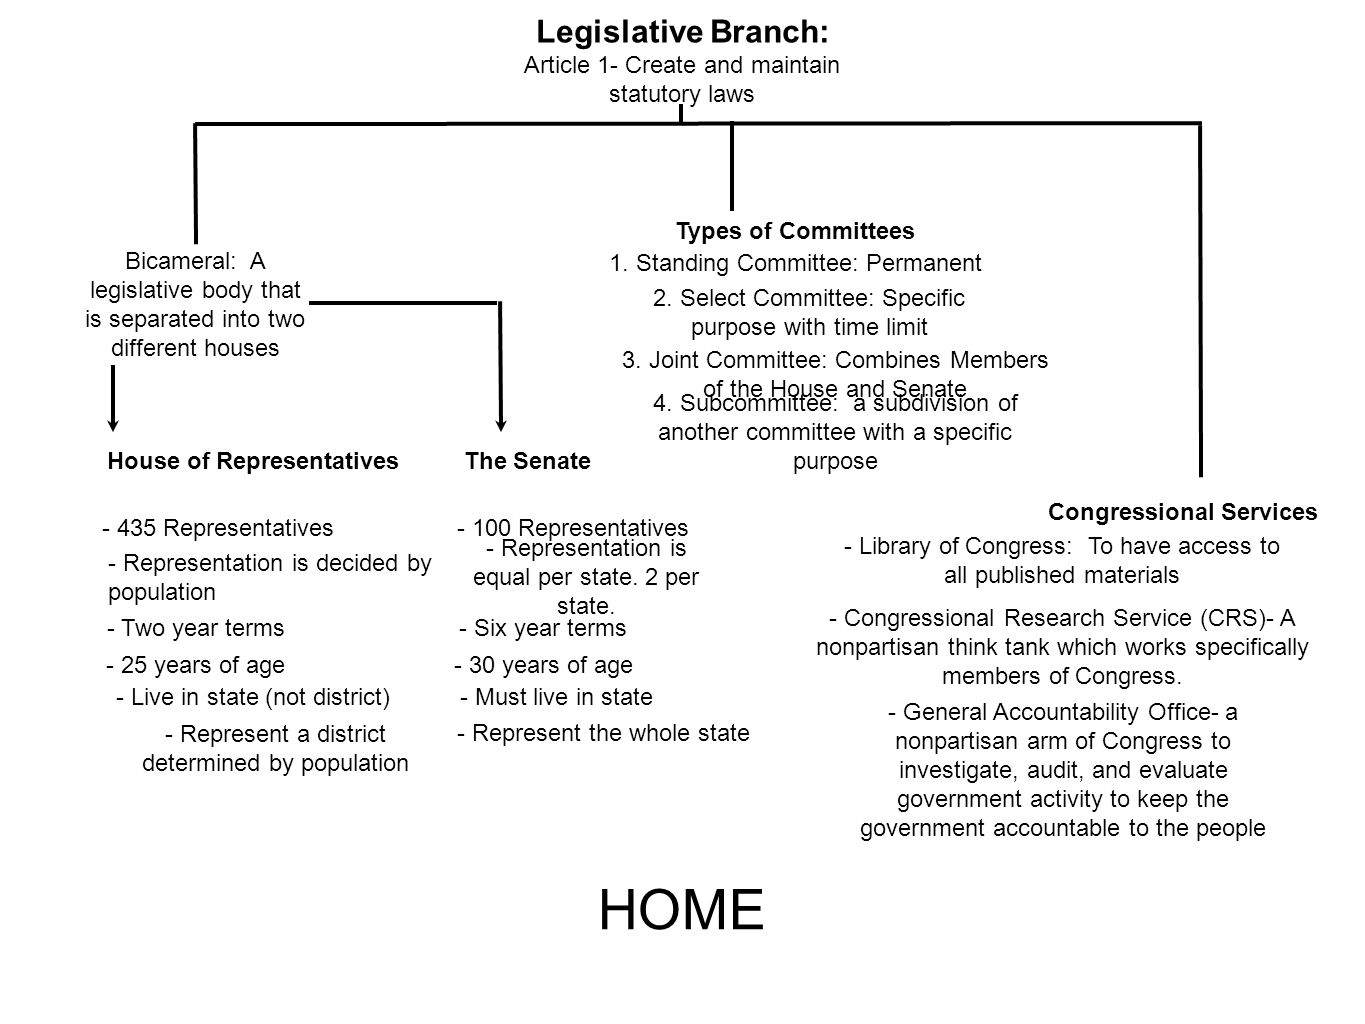 House of Representatives Congressional Services